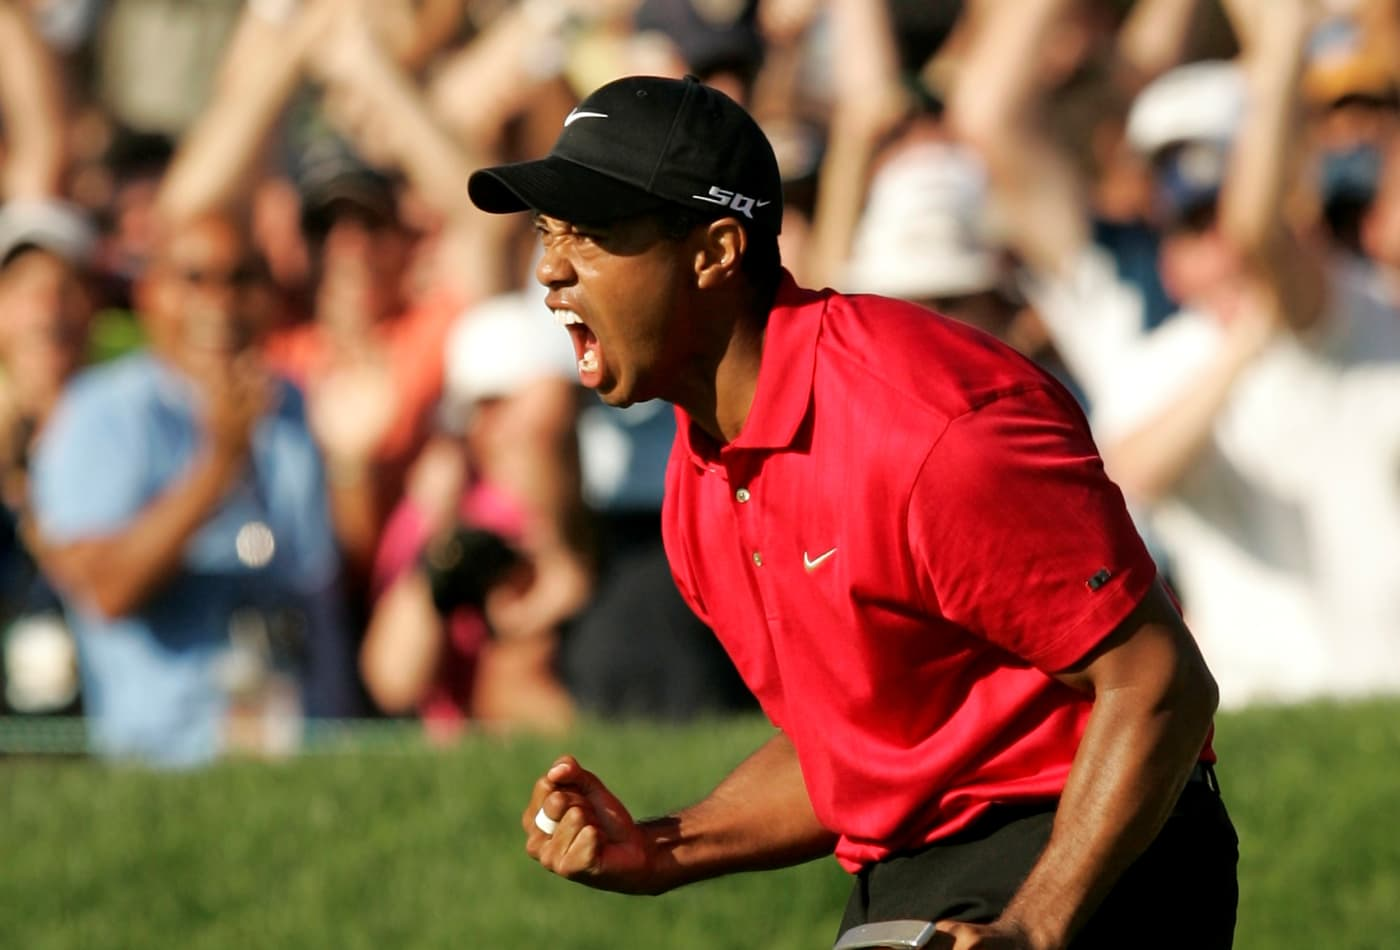 90a0f09bb255 U.S. golfer Tiger Woods celebrates after making a birdie on the 18th hole  during the final round of the U.S. Open golf championship at Torrey Pines  in San ...